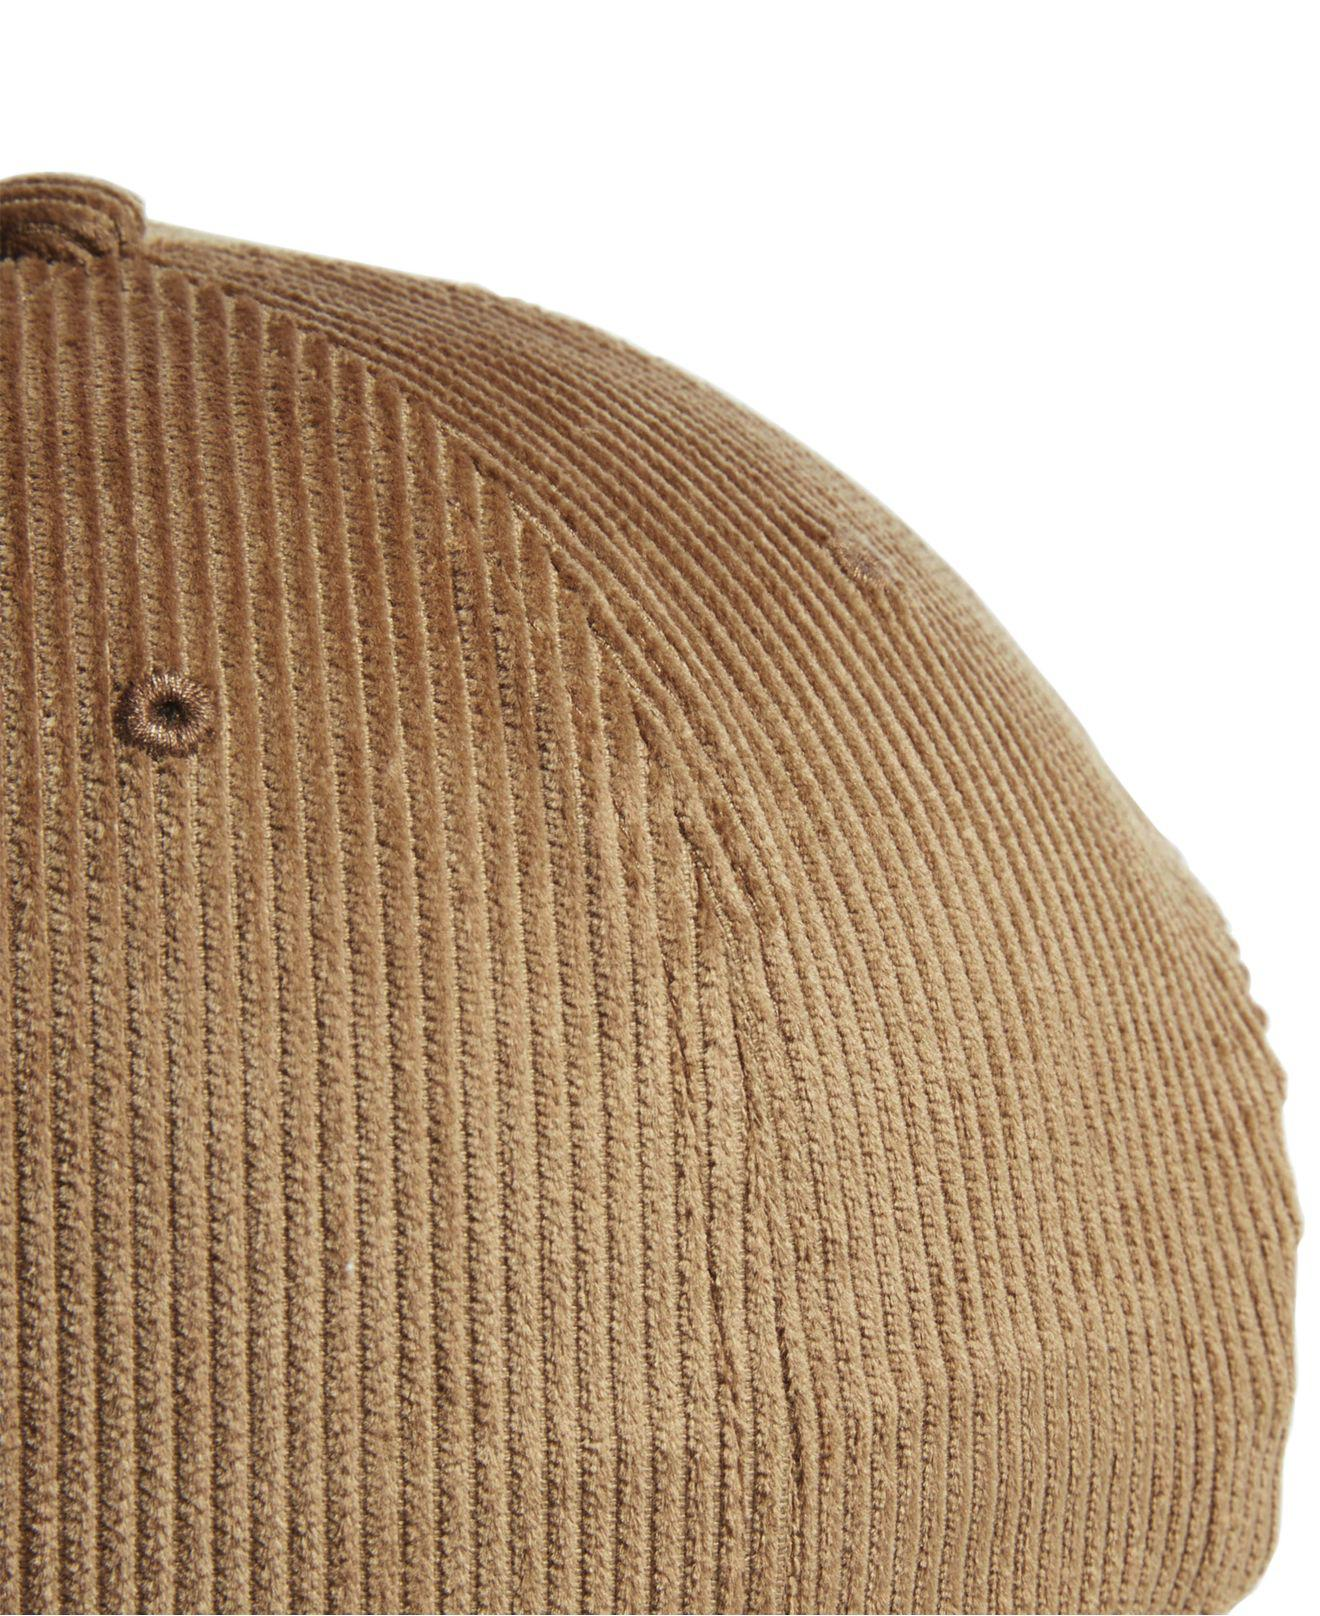 Lyst - adidas Originals Corduroy Logo Hat in Brown for Men b1b7342ecc50